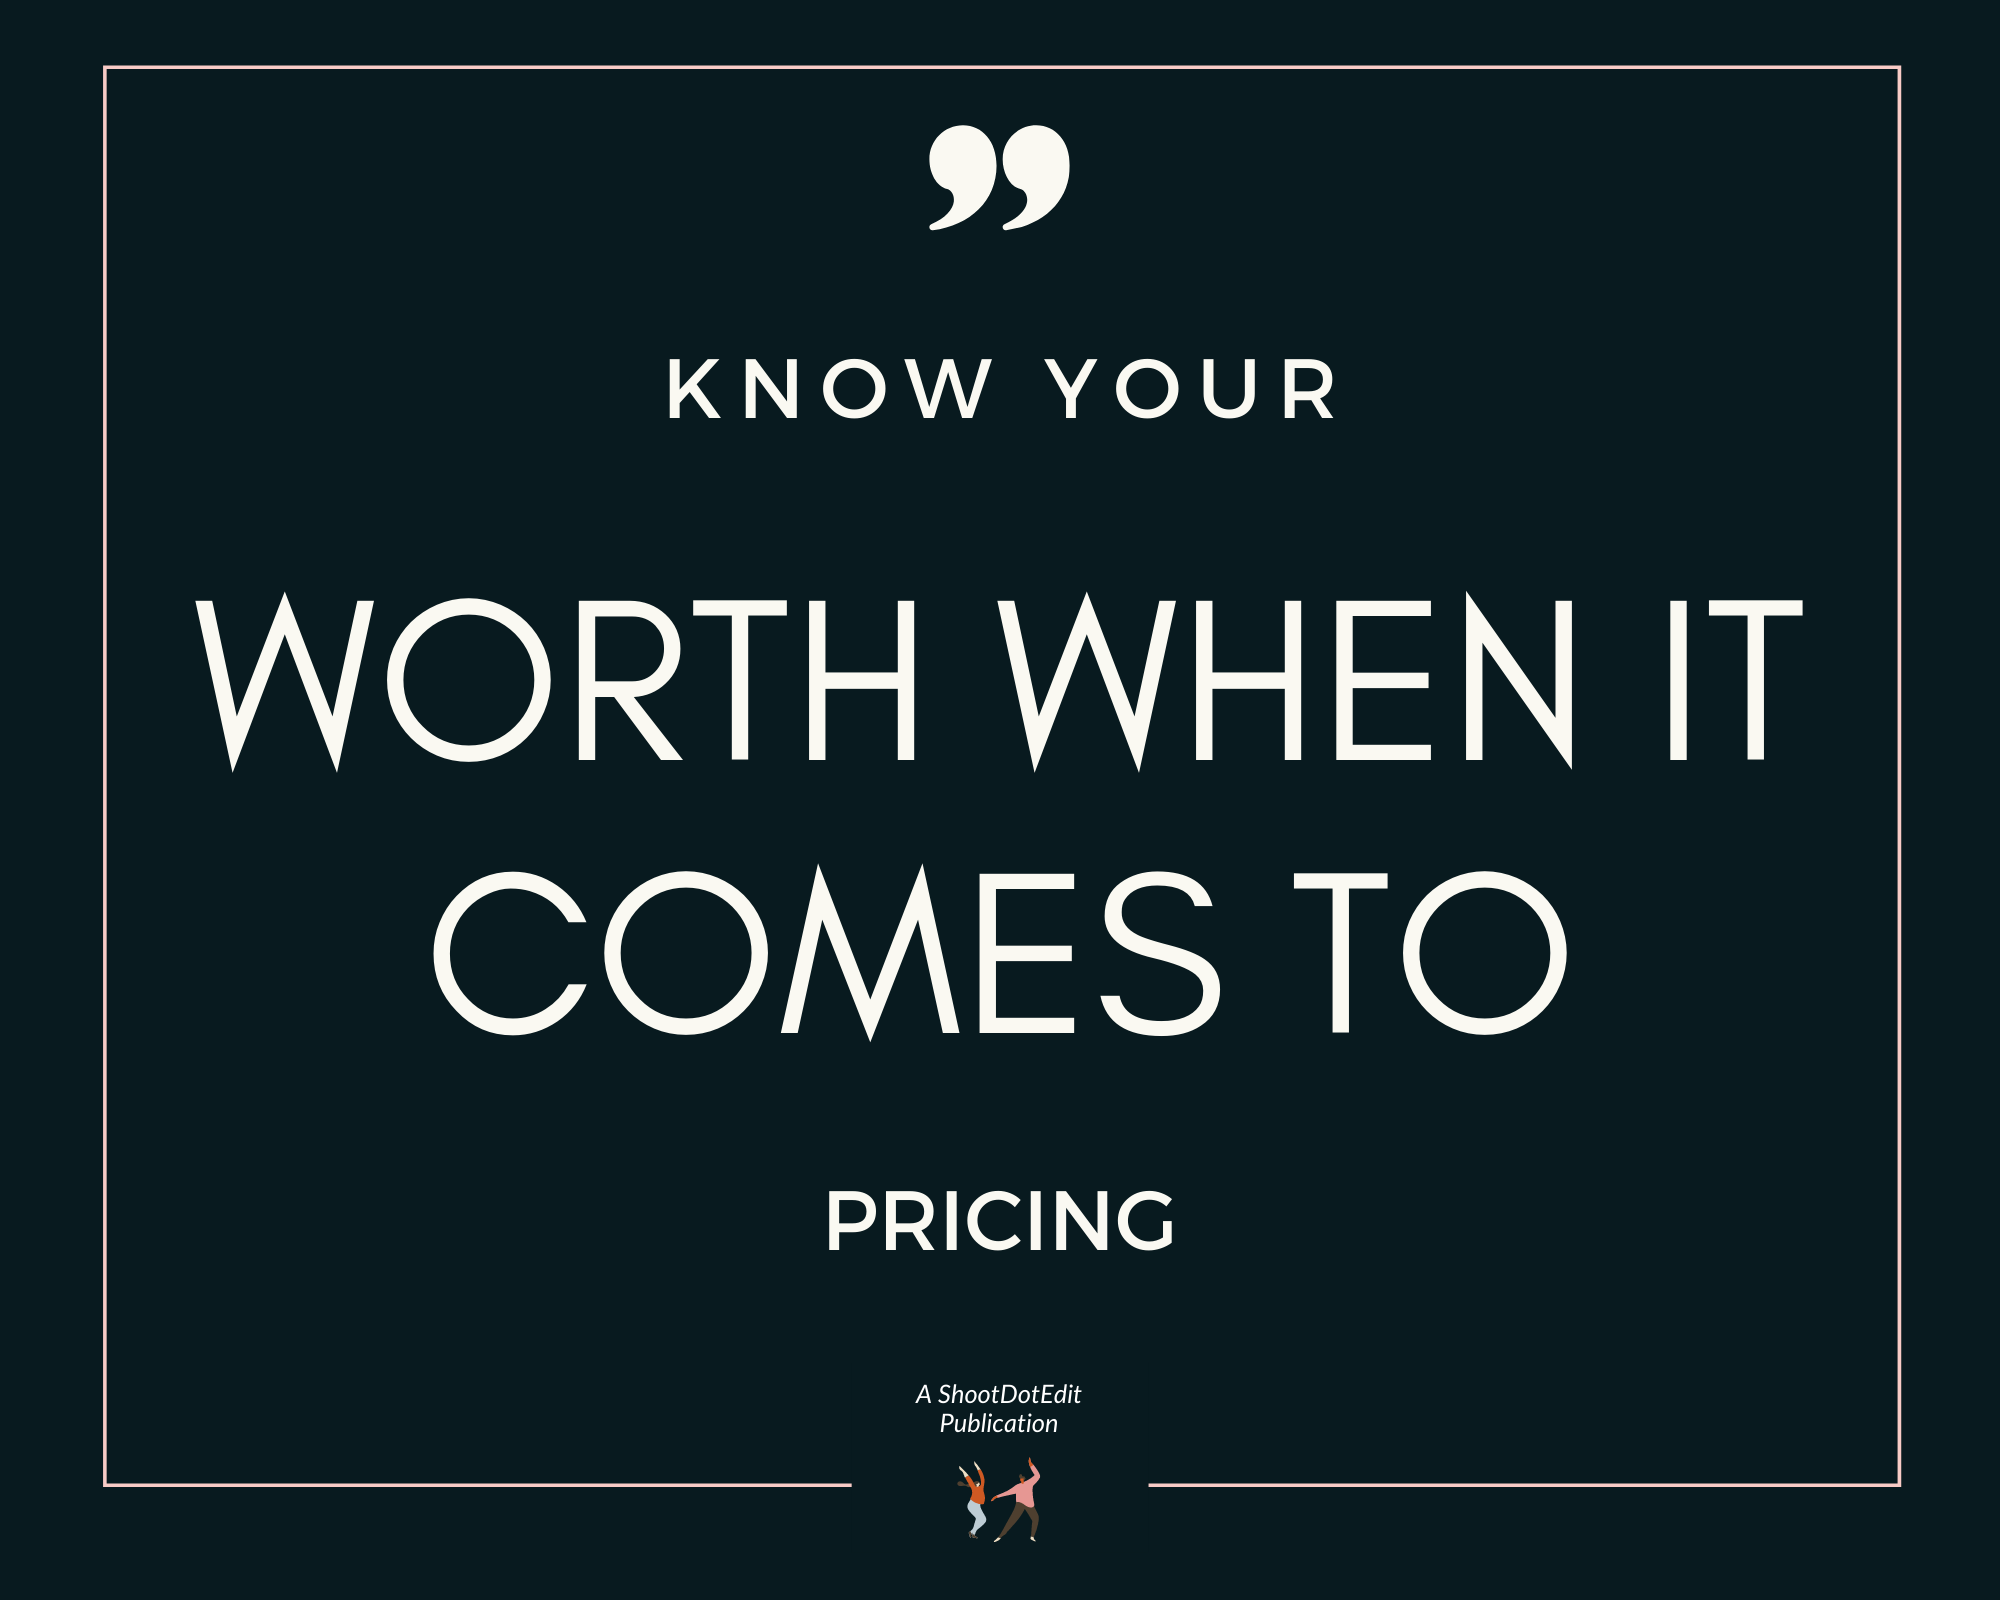 Infographic stating know your worth when it comes to pricing